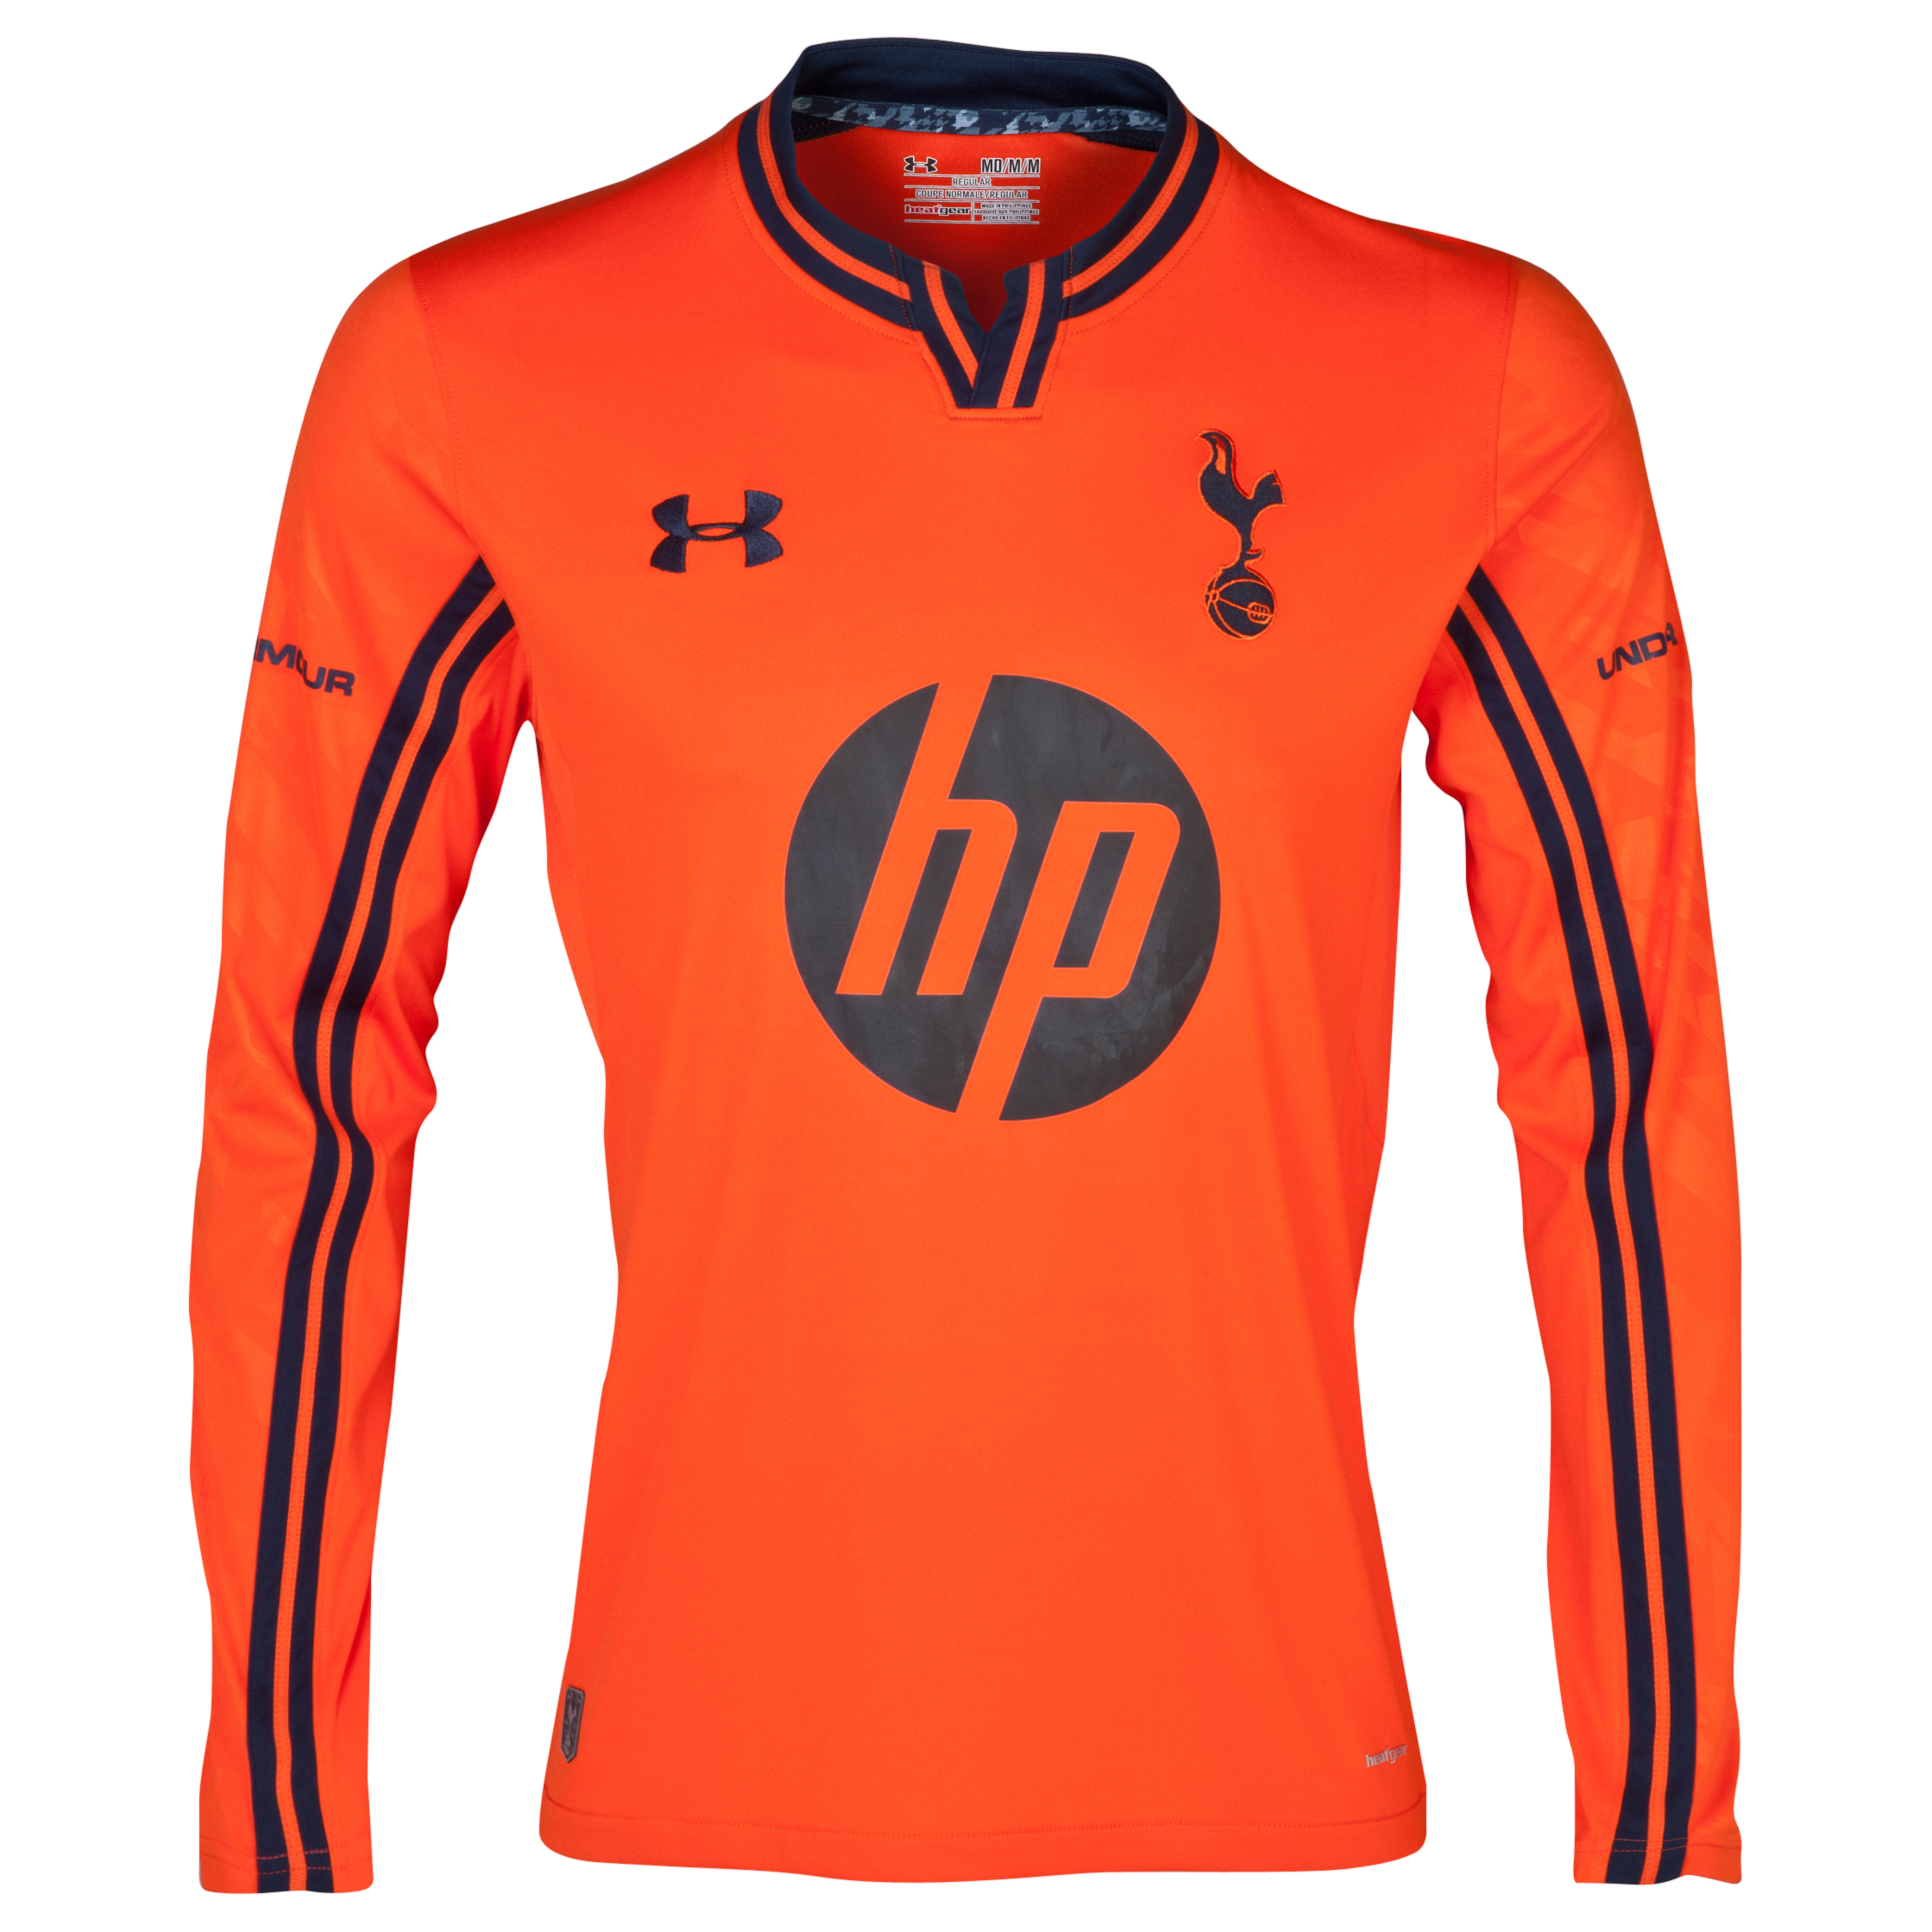 Buy Tottenham Hotspur Home Goalkeeper Kit 2013/14 Kids